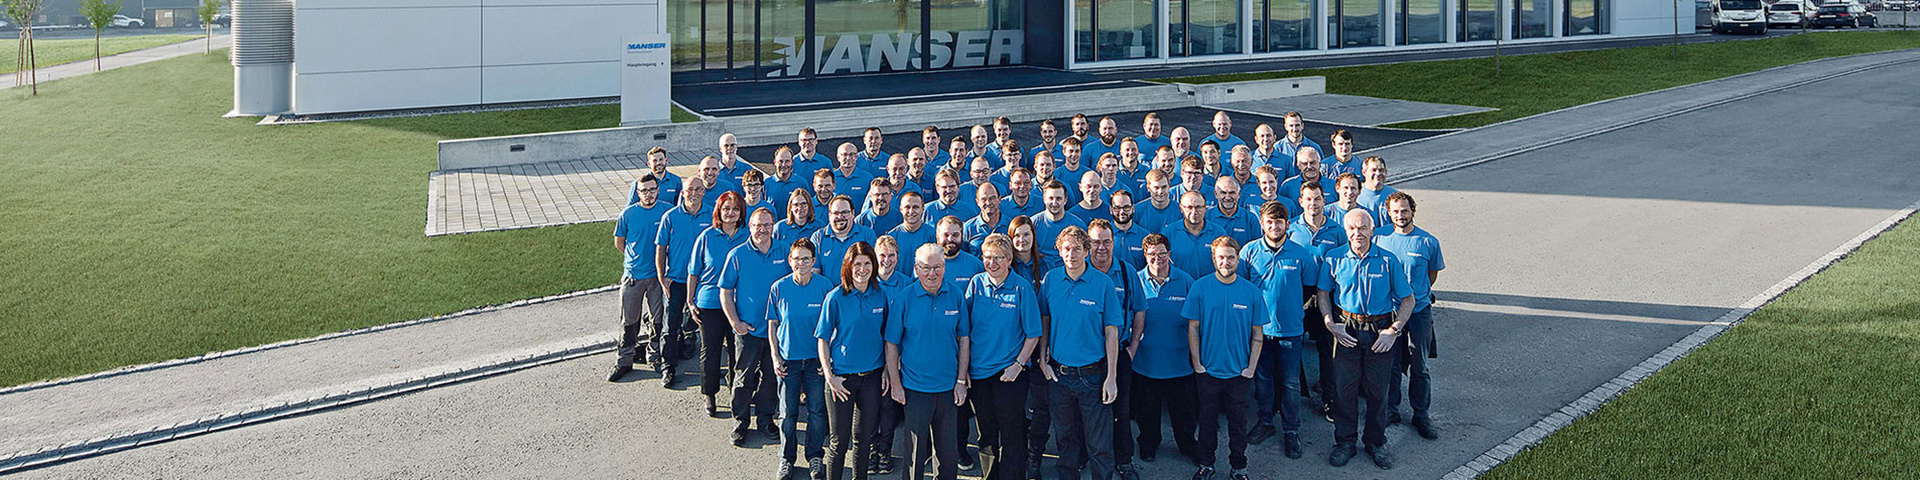 The Manser company